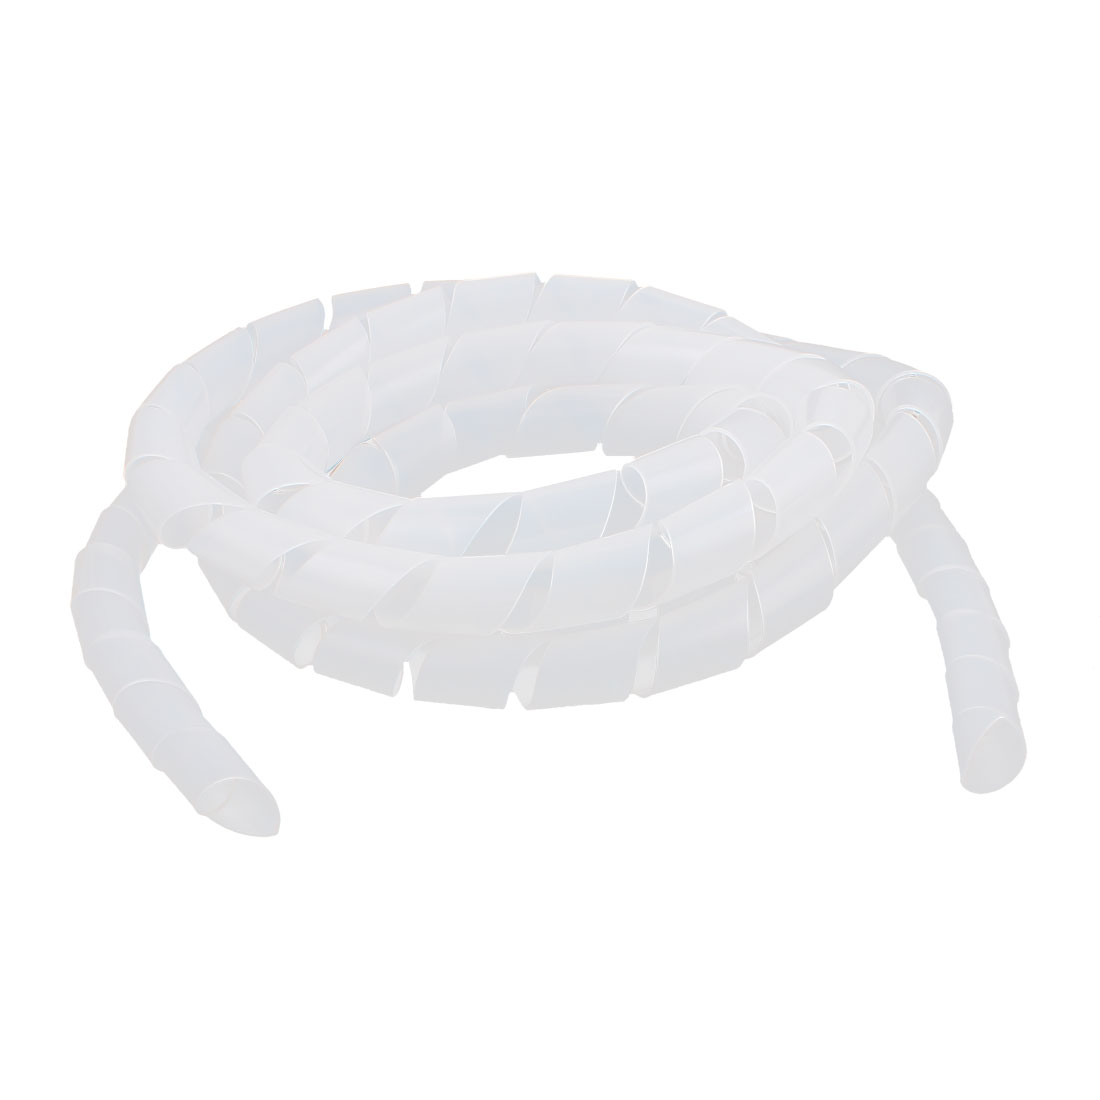 3 Meter Length 18mm Dia Cable Wire Binding Organizer Manager Spiral Wrap Band White